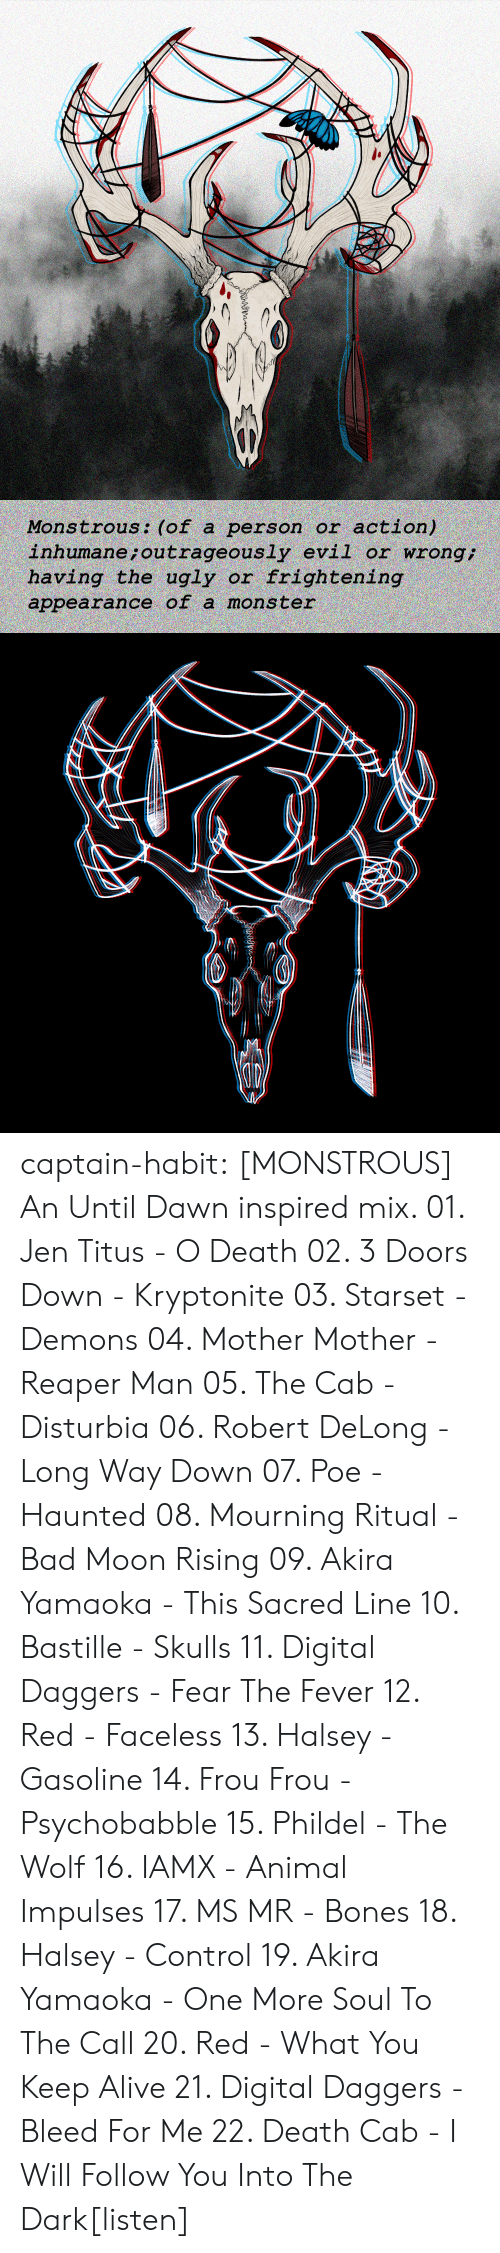 mourning: action)  inhumane ; outrageously evil or wrong  having the ugly or frightening  Monstrous: (of a person or  appearance of a mons ter captain-habit:  [MONSTROUS] An Until Dawn inspired mix. 01. Jen Titus - O Death 02. 3 Doors Down - Kryptonite 03. Starset - Demons 04. Mother Mother - Reaper Man 05. The Cab - Disturbia 06. Robert DeLong - Long Way Down 07. Poe - Haunted  08. Mourning Ritual - Bad Moon Rising 09. Akira Yamaoka - This Sacred Line 10. Bastille - Skulls 11. Digital Daggers - Fear The Fever 12. Red - Faceless 13. Halsey - Gasoline  14. Frou Frou - Psychobabble  15. Phildel - The Wolf 16. IAMX - Animal Impulses 17. MS MR - Bones 18. Halsey - Control 19. Akira Yamaoka - One More Soul To The Call 20. Red - What You Keep Alive 21. Digital Daggers - Bleed For Me 22. Death Cab - I Will Follow You Into The Dark[listen]